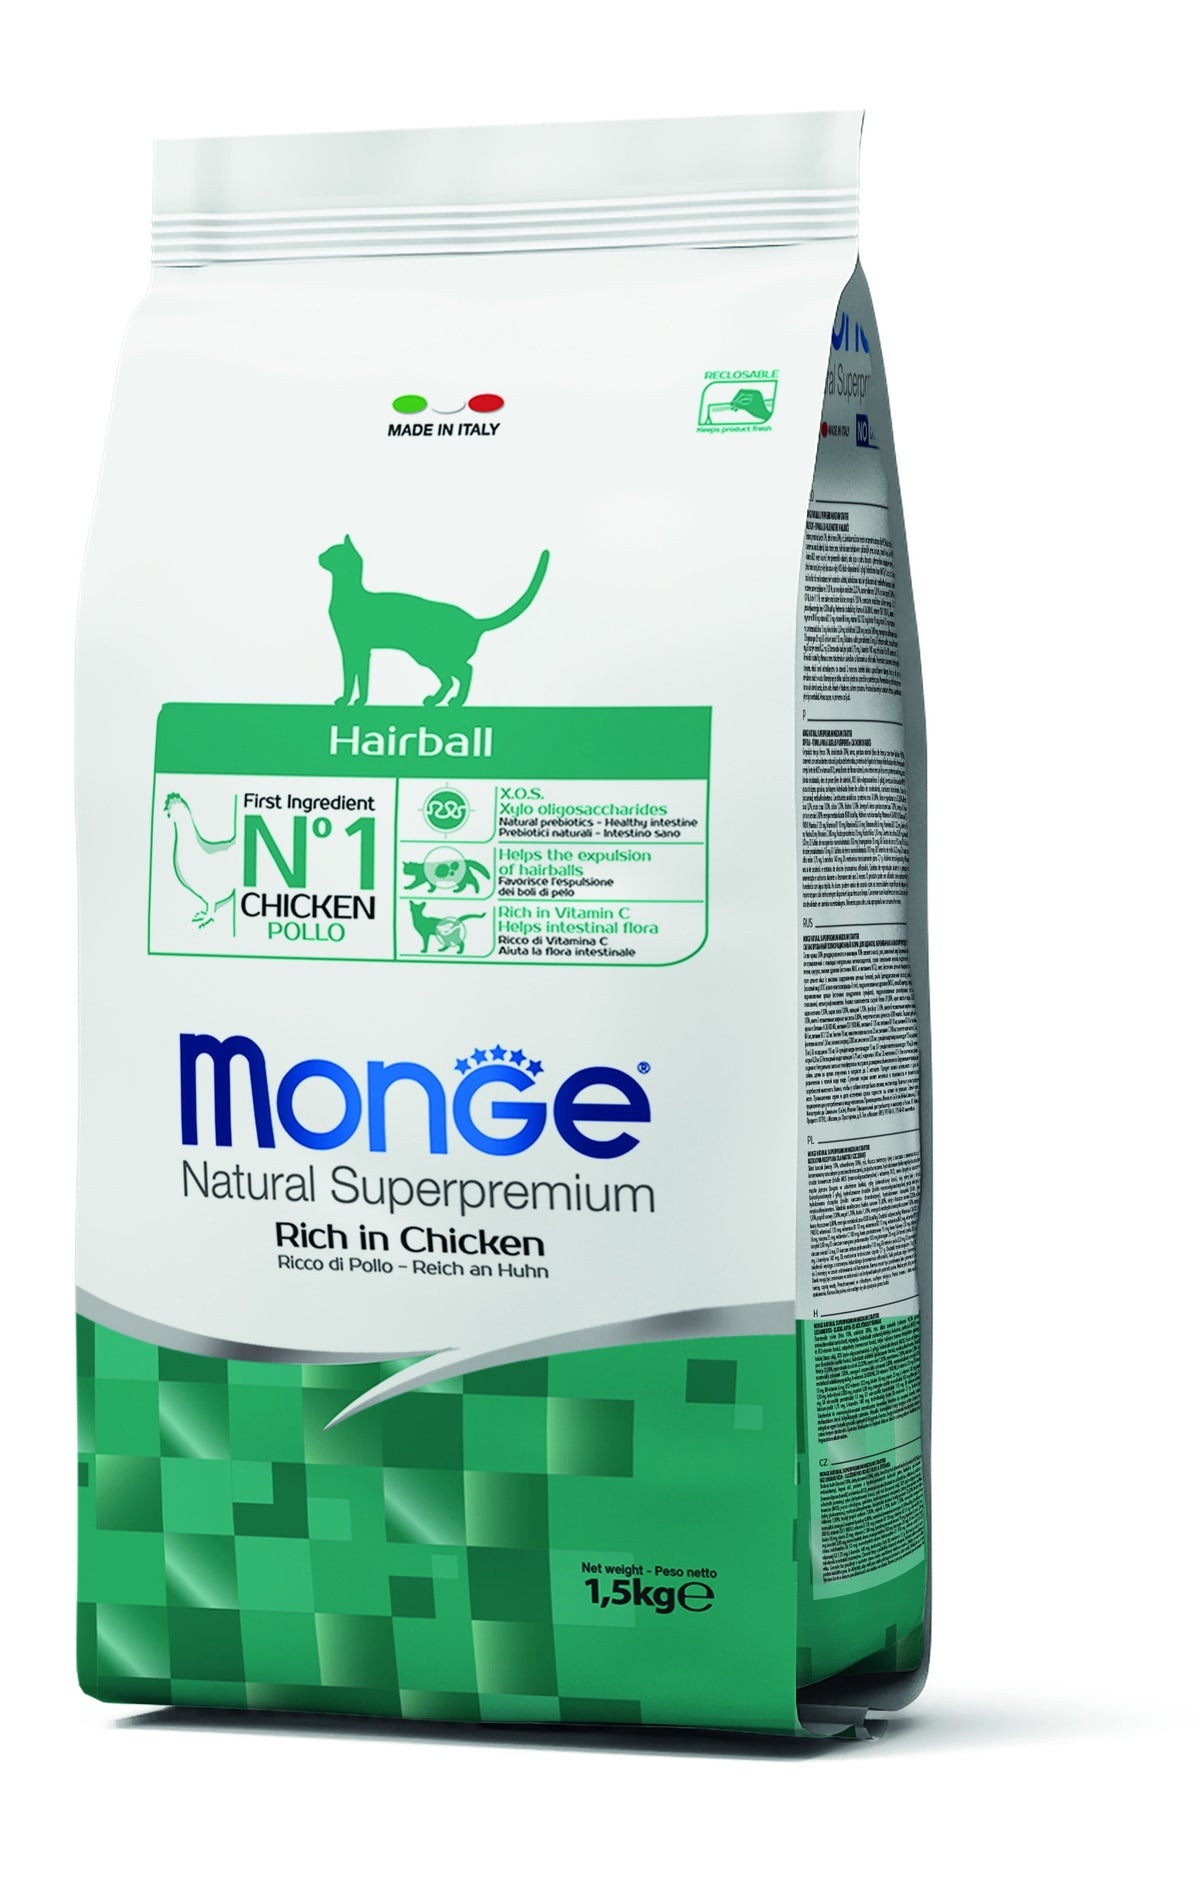 Monge Natural Superpremium secco gatto HAIRBALL